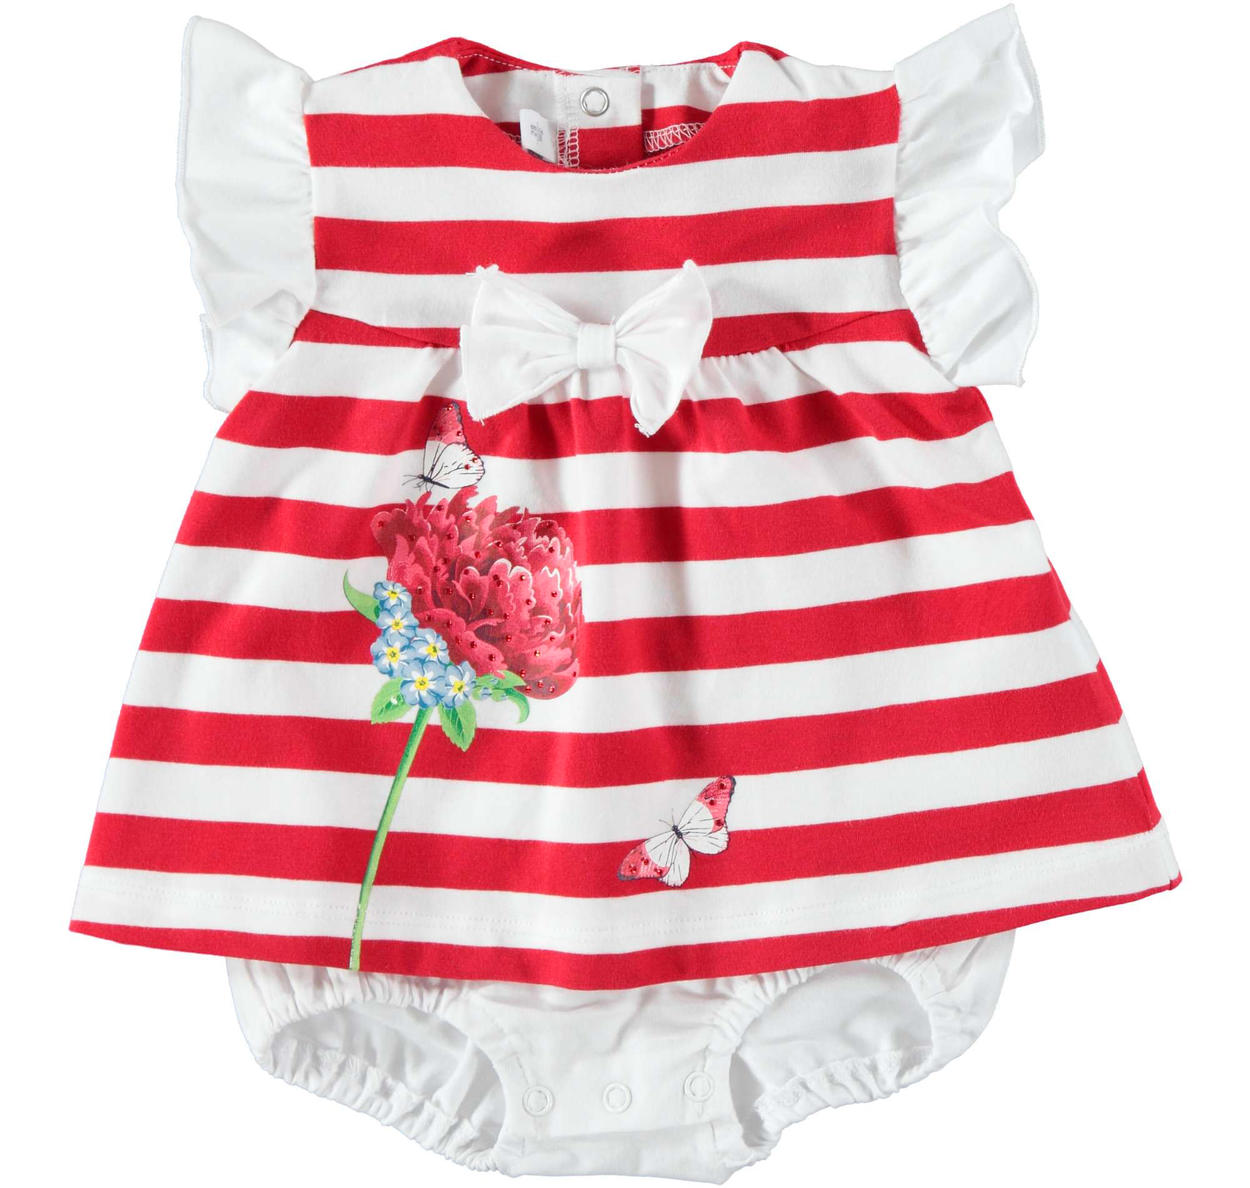 a488b7140 Baby girl cotton romper suit with bow and flower for newborn from 0 ...